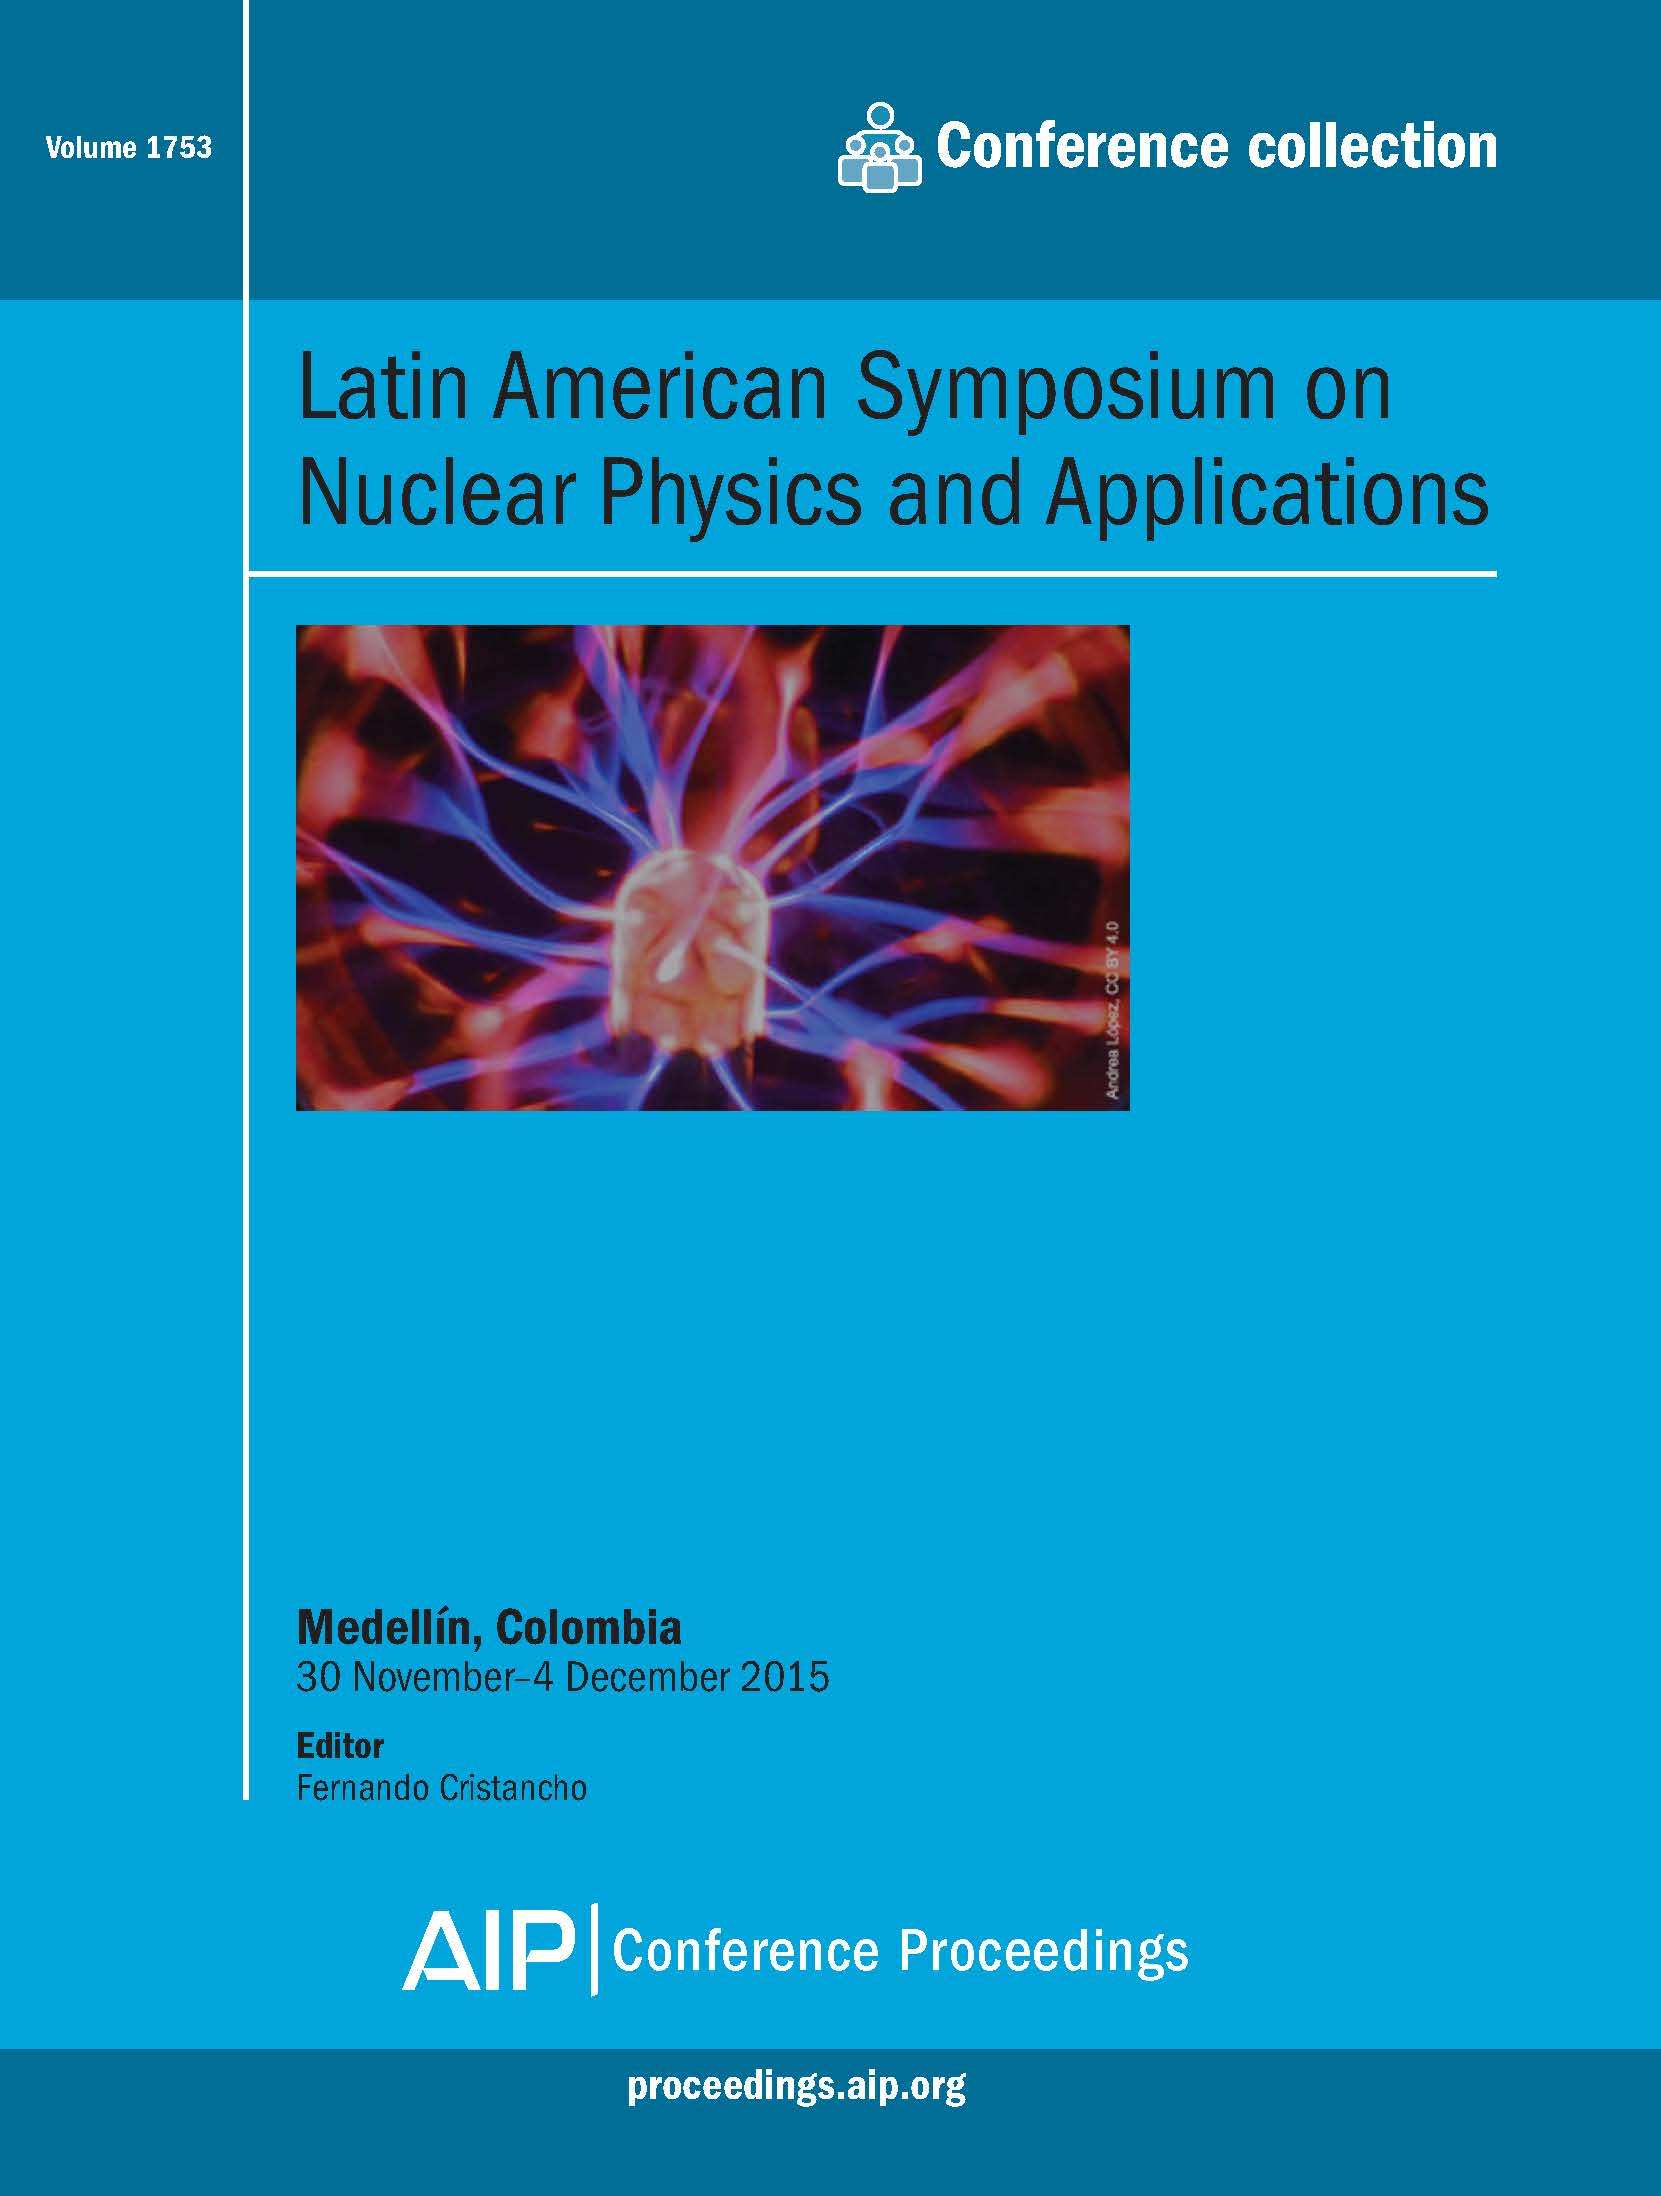 Volume 1753: Latin American Symposium on Nuclear Physics and